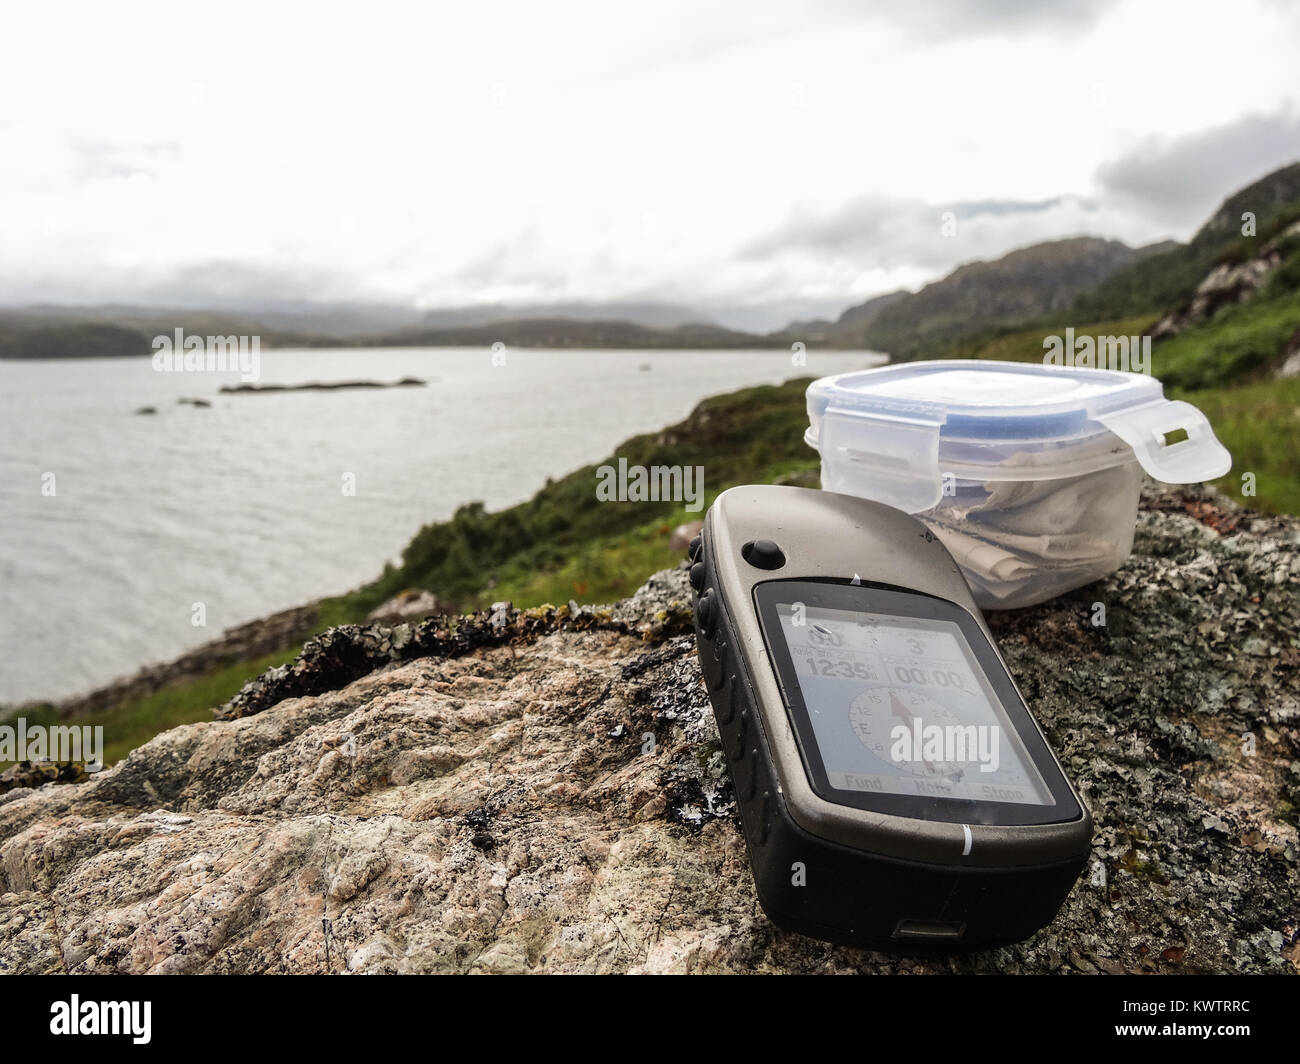 geocaching in scotland with gps device and cache container - Stock Image